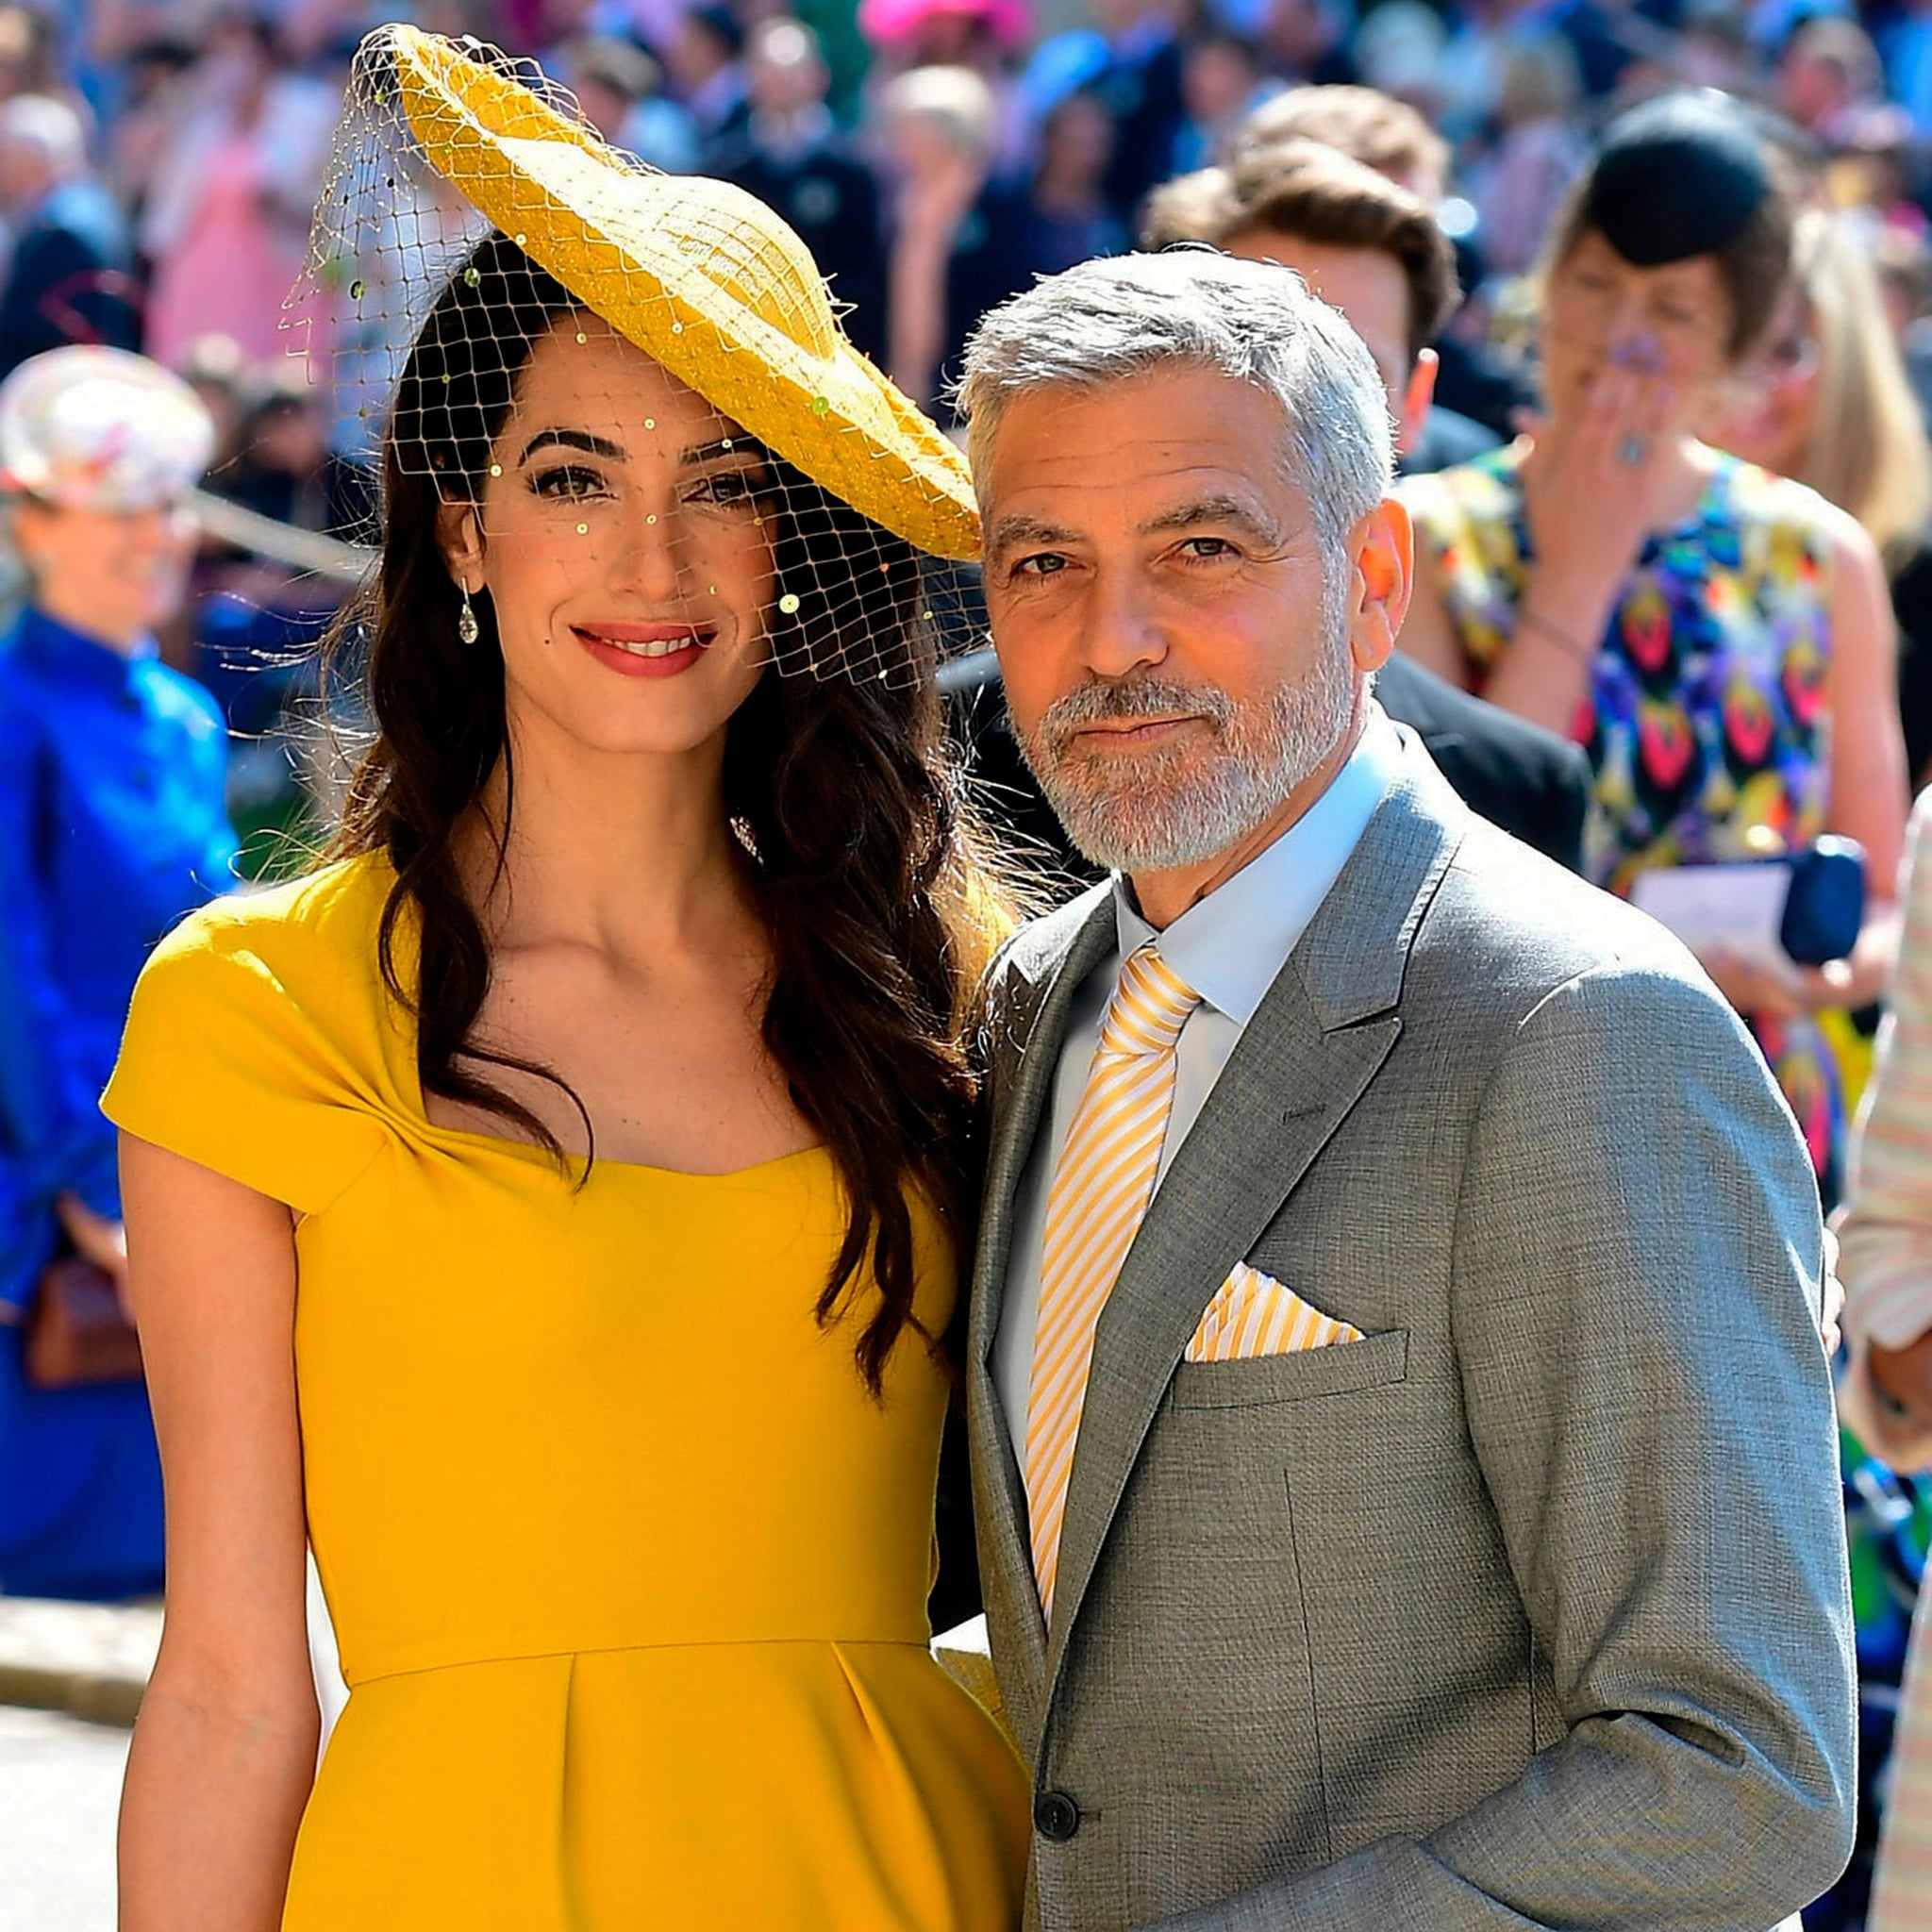 81f8c26f53476 George and Amal Clooney at Royal Wedding 2018 Pictures